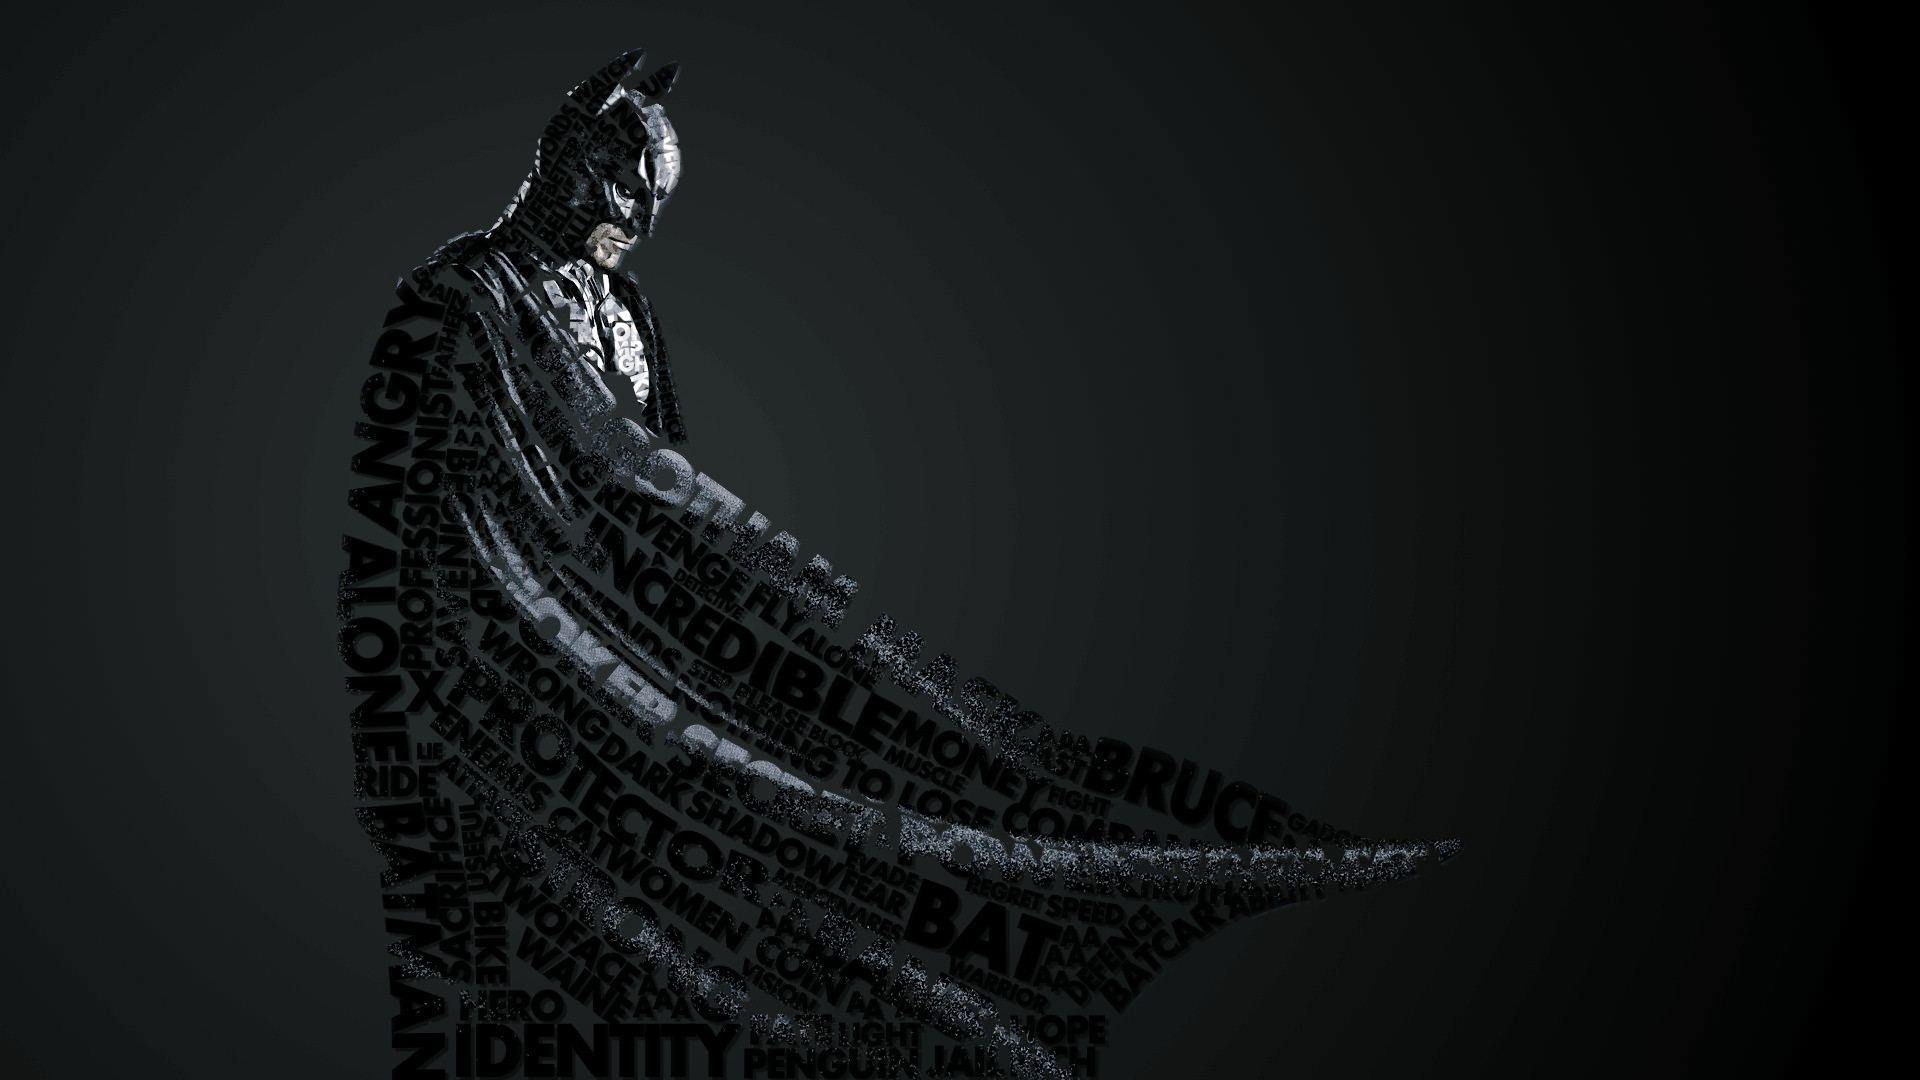 Remarkable Batman Wallpaper